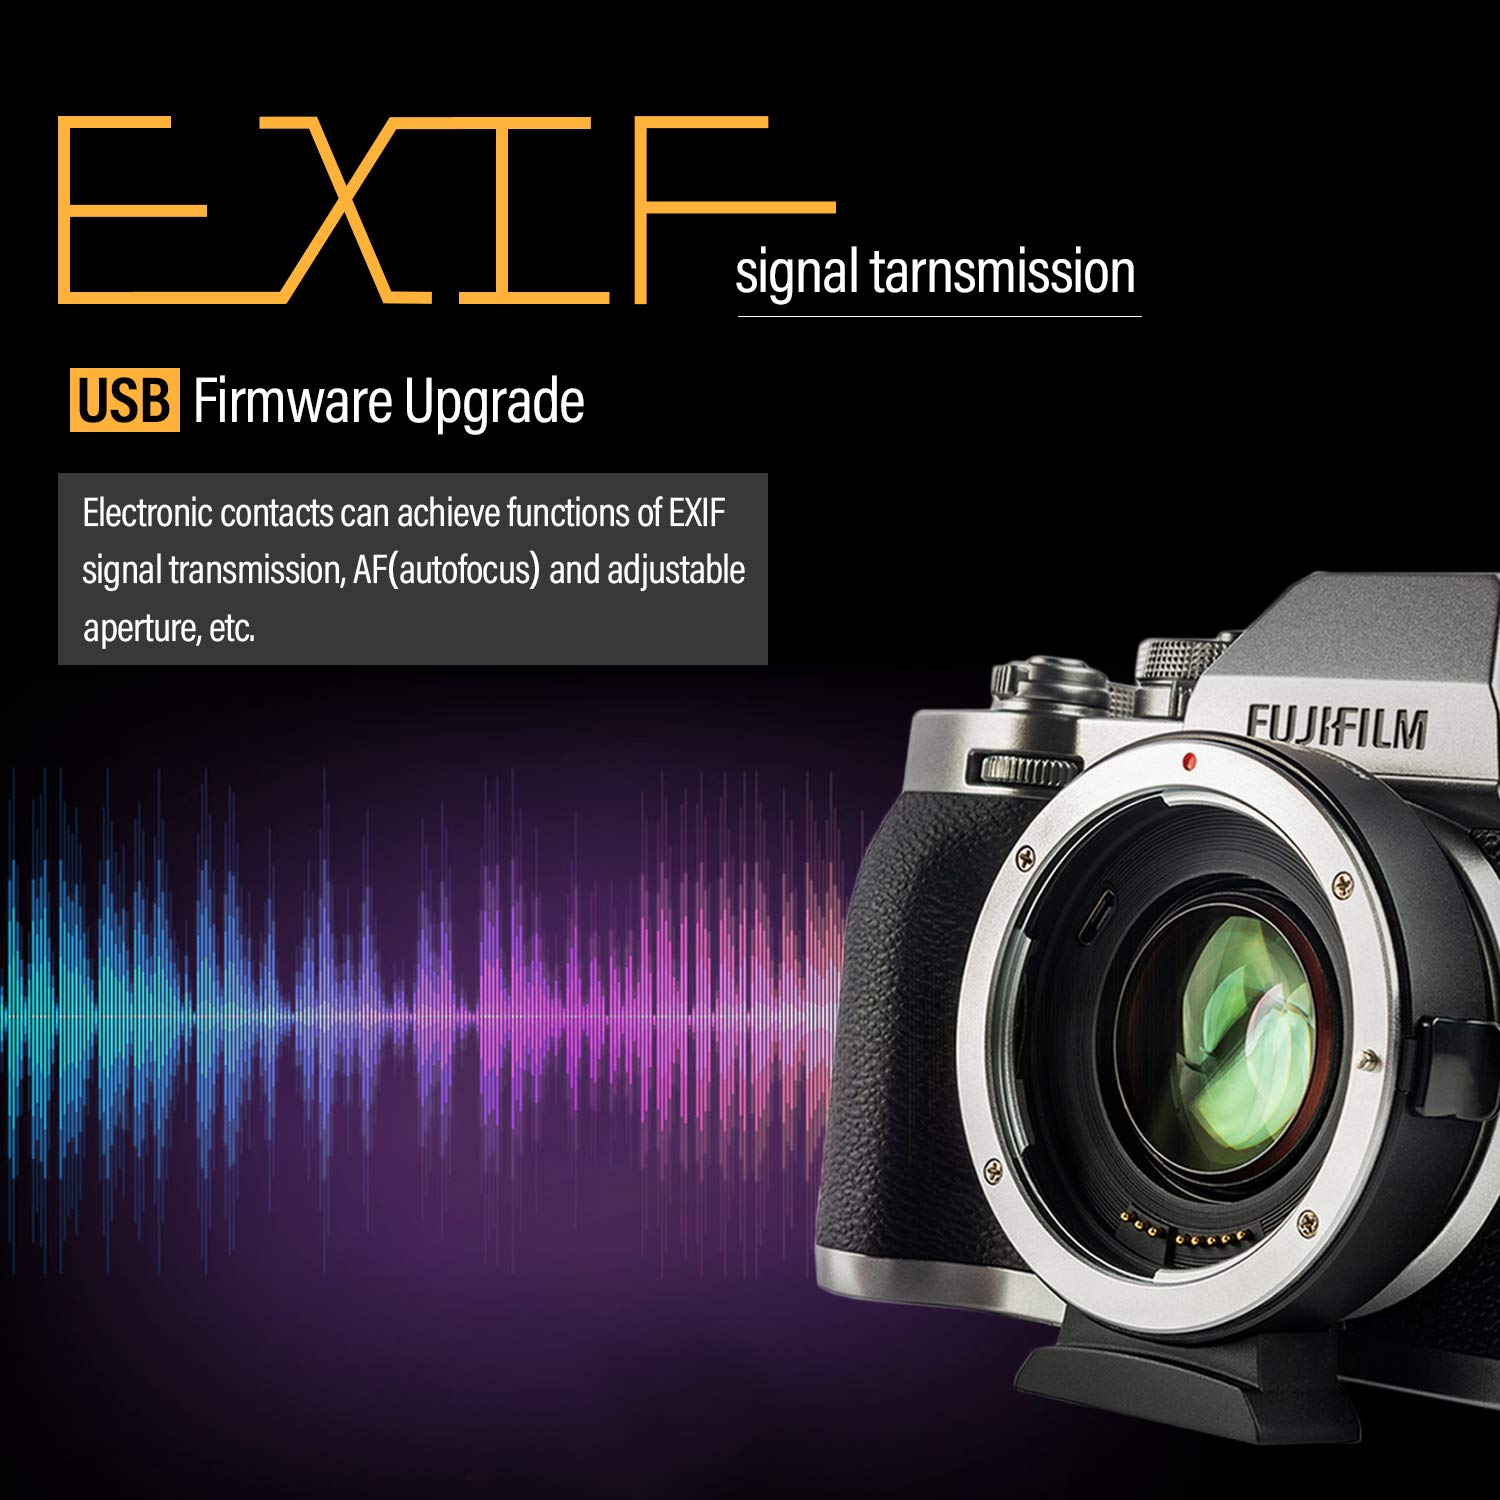 Viltrox EF-FX2 Auto Focus Lens Adapter 0.71x Focal Reducer Speed Booster for Canon EF Mount Lens to Fuji X-Mount Mirrorless Camera X-T3 X-T2 X-T20 X-T10 X-T100 X-PRO2 X-E3 X-A20 X-A5